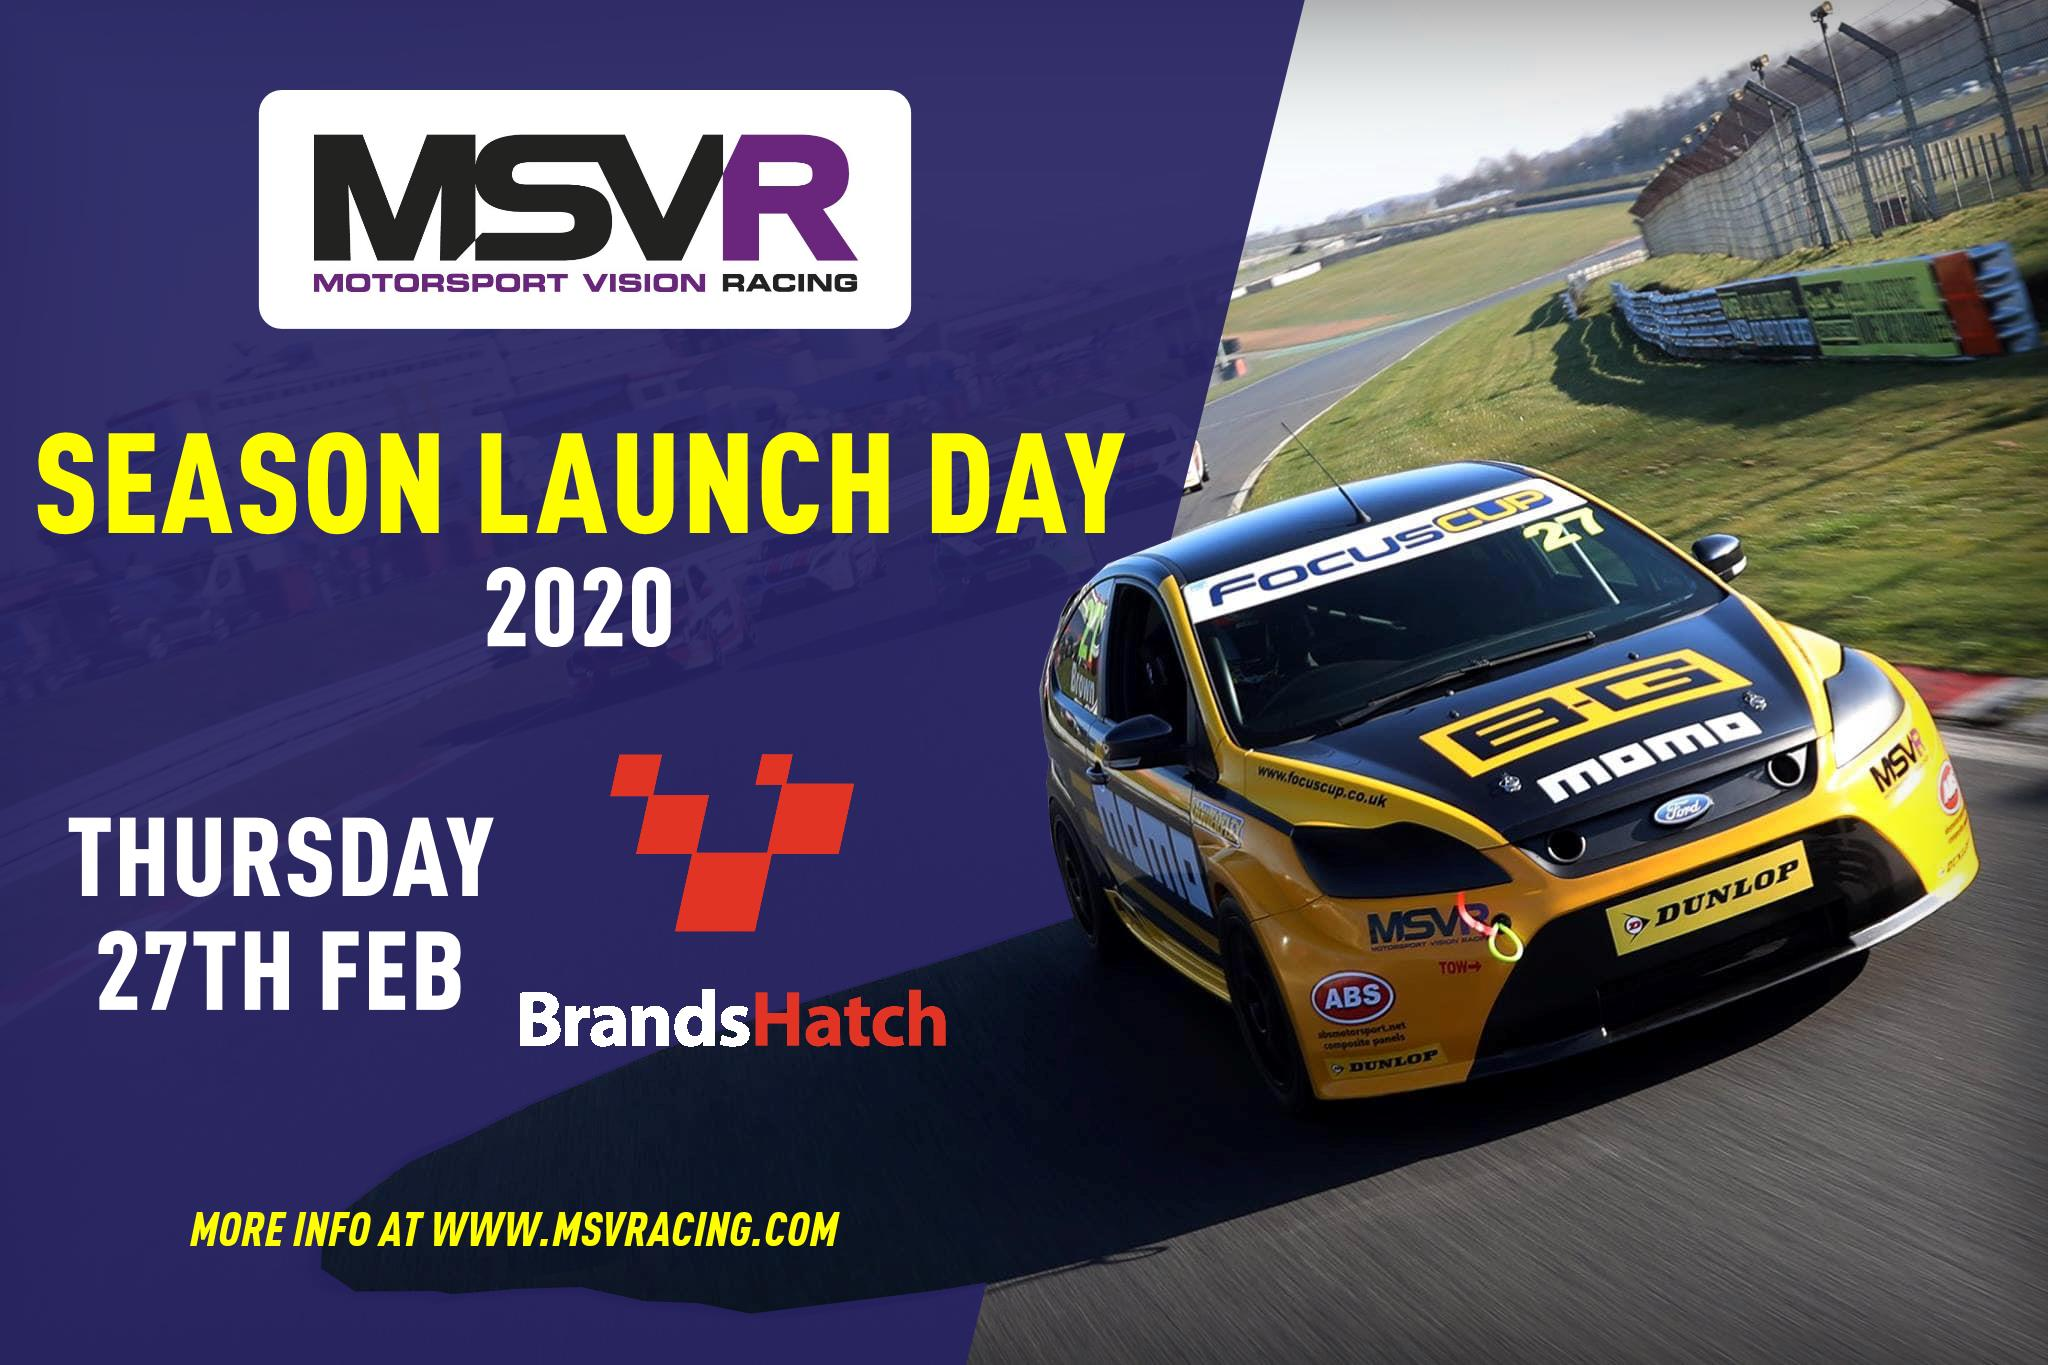 MSVR Season Launch Day 2020